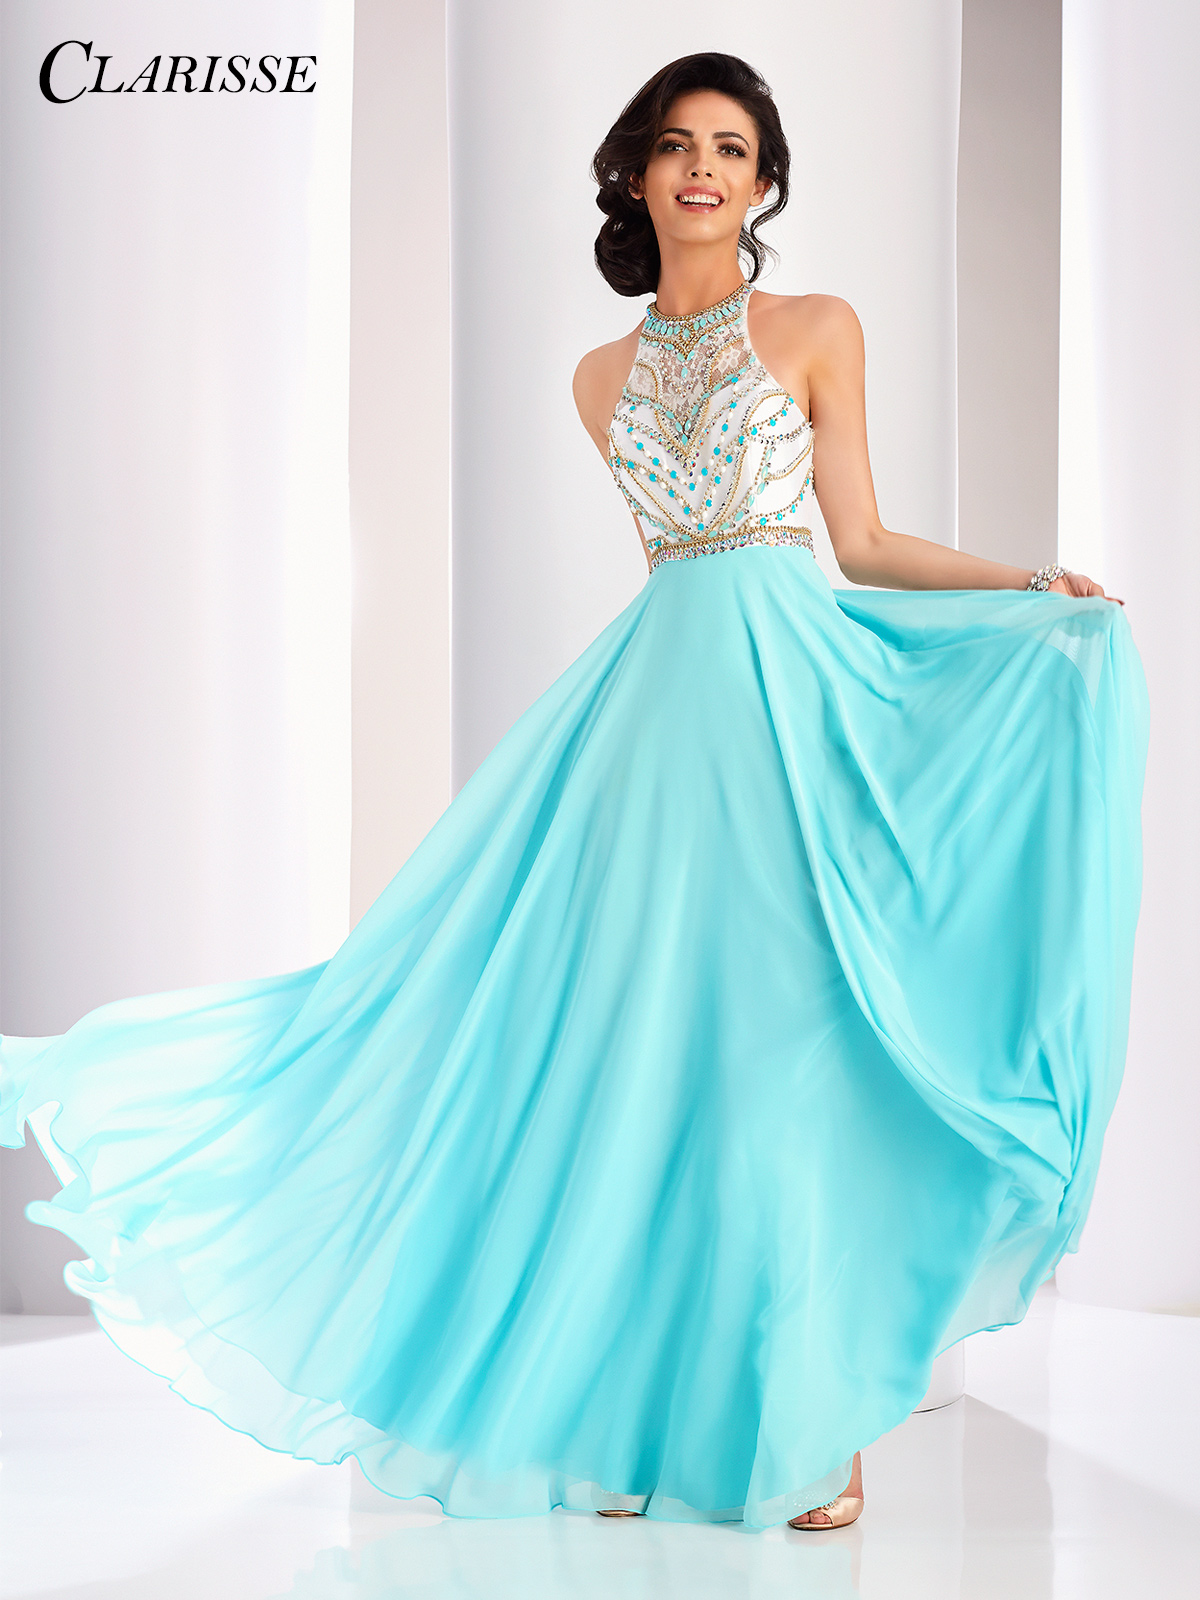 Clarisse Prom Dress 3069 Promgirl Net